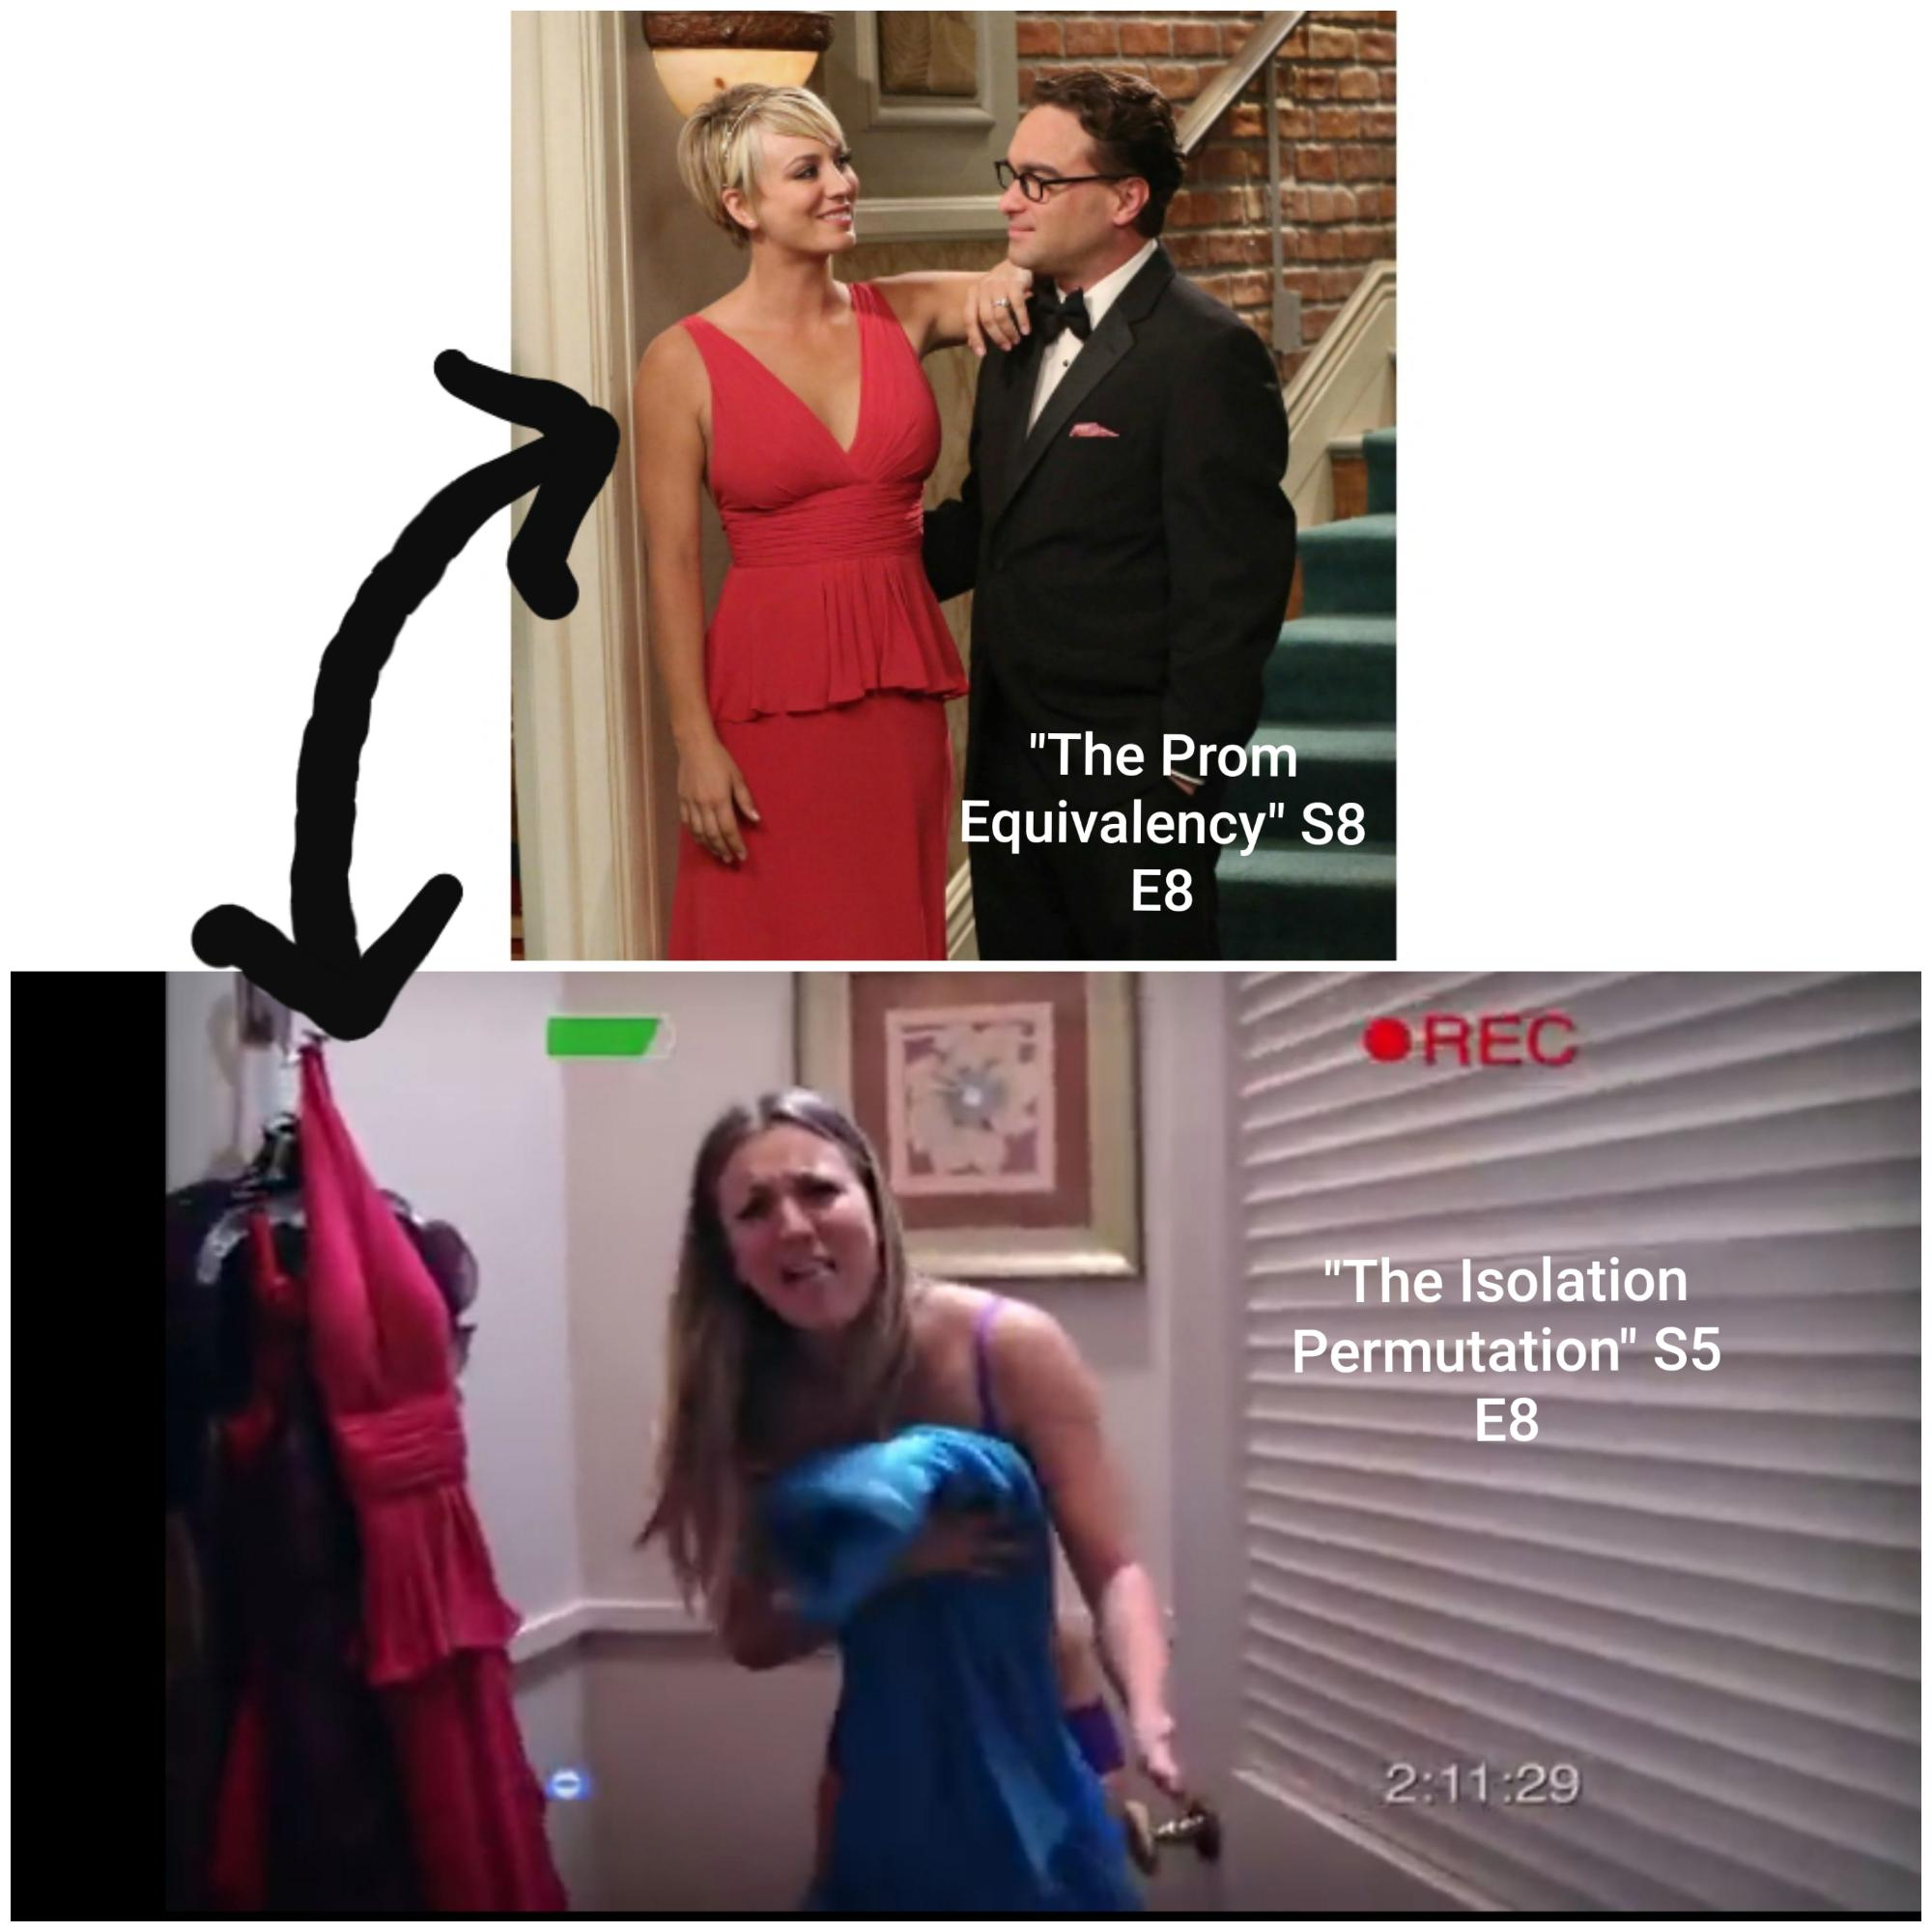 I just noticed this watching TBBT on DVD. Its amazing the things you see when you've watched something 1000 times.